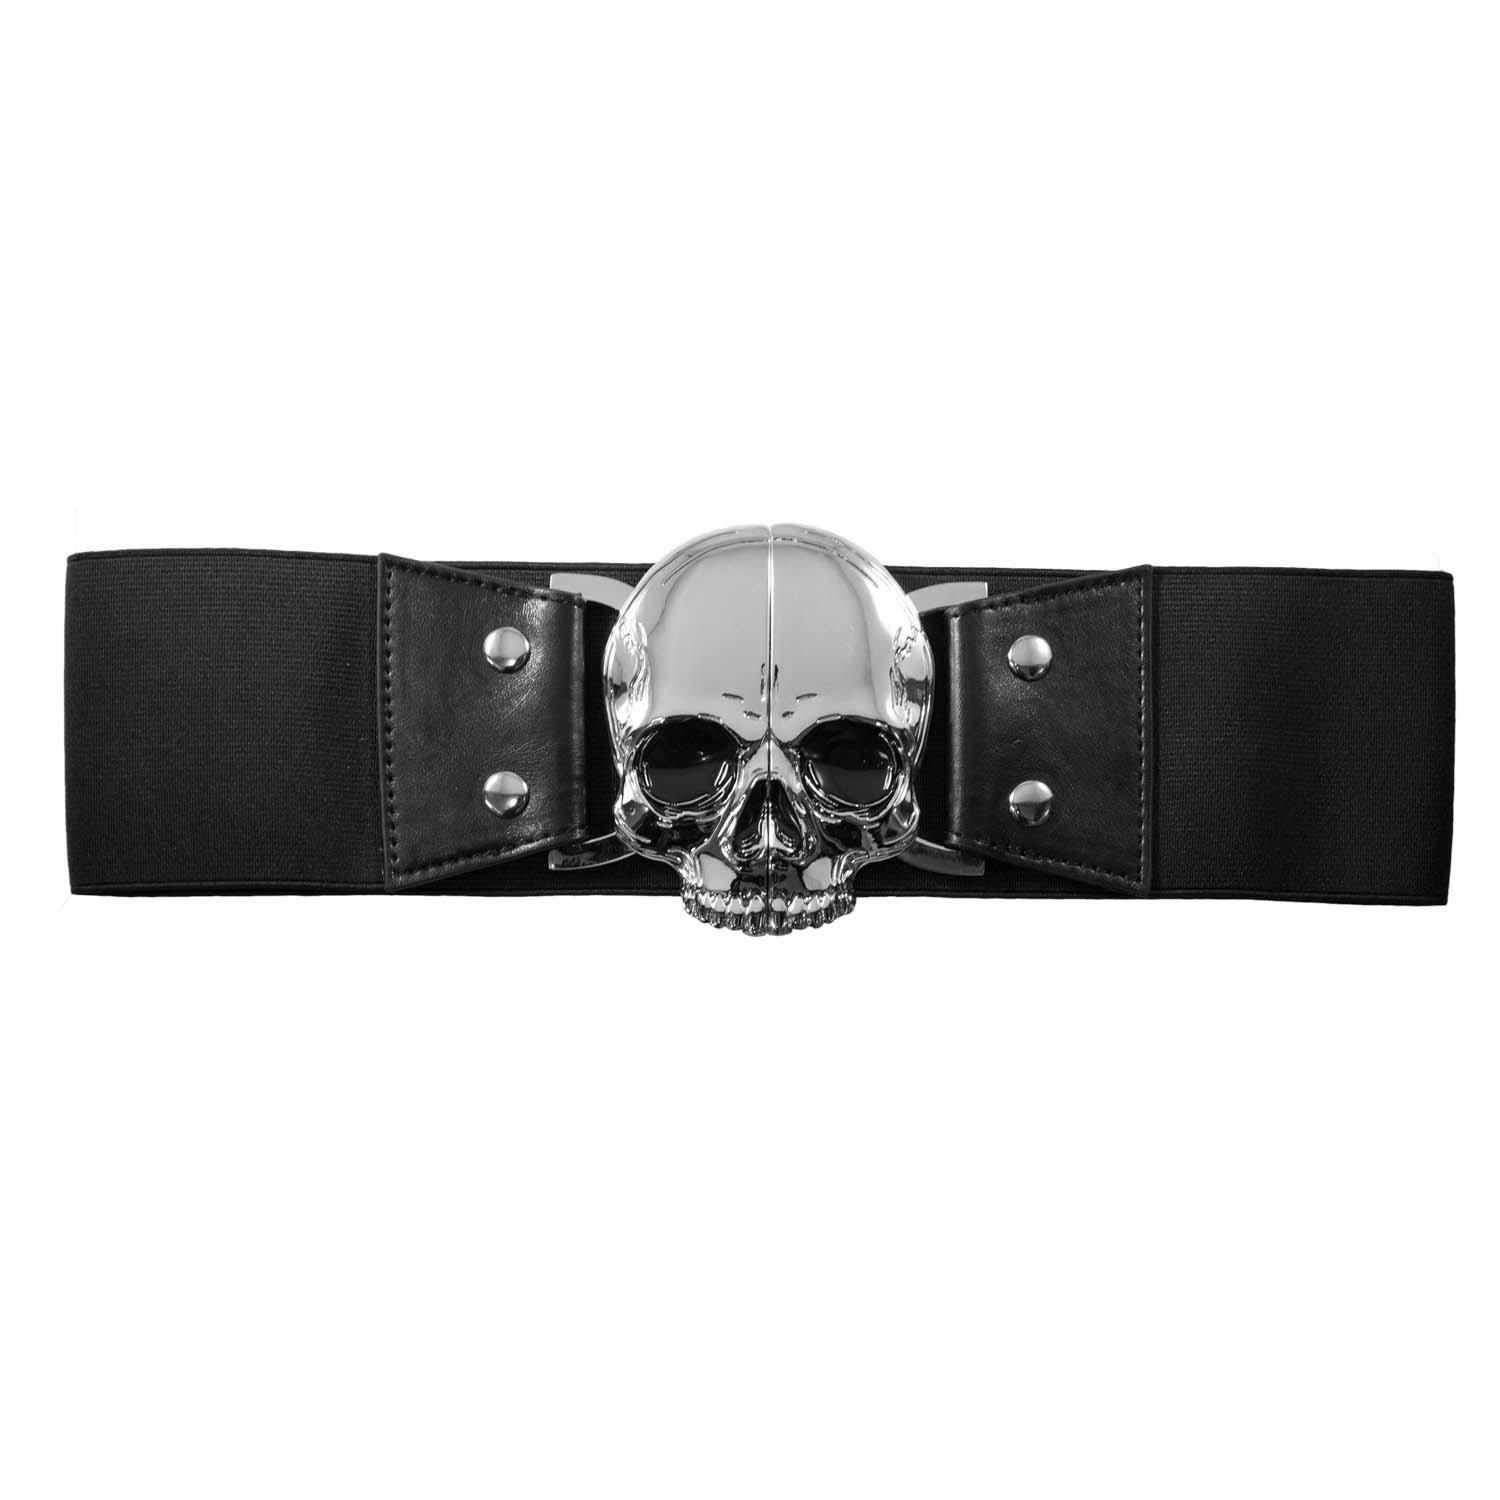 Wide Elastic Retro Belt by Kreepsville  666 -  Black Skull